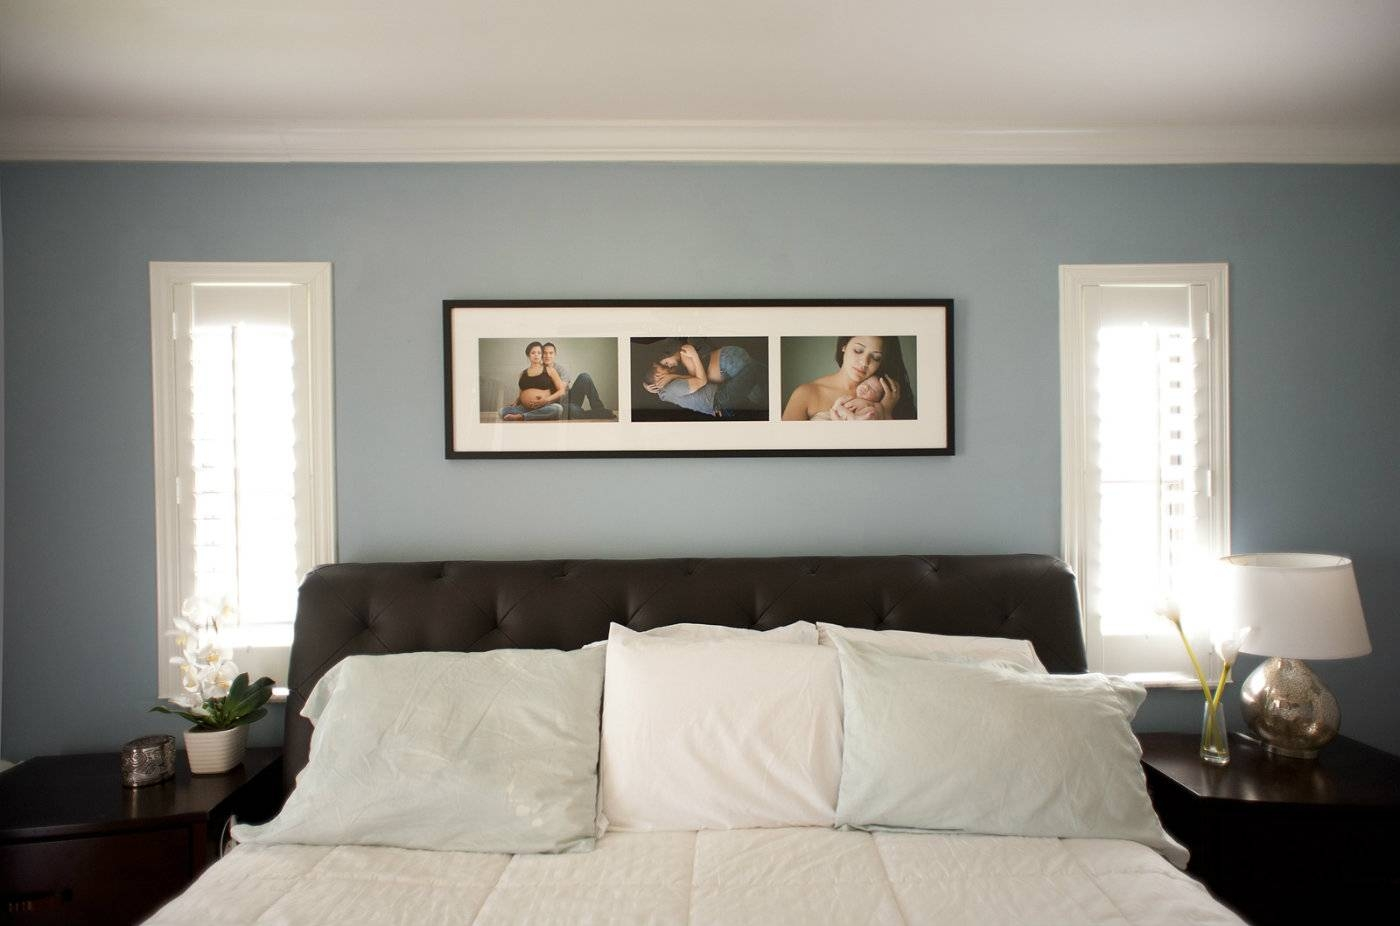 Elegant Master Bedroom Art Ideas Master Bedroom Wall Art 12400 Intended For Most Current Bed Wall Art (View 15 of 25)